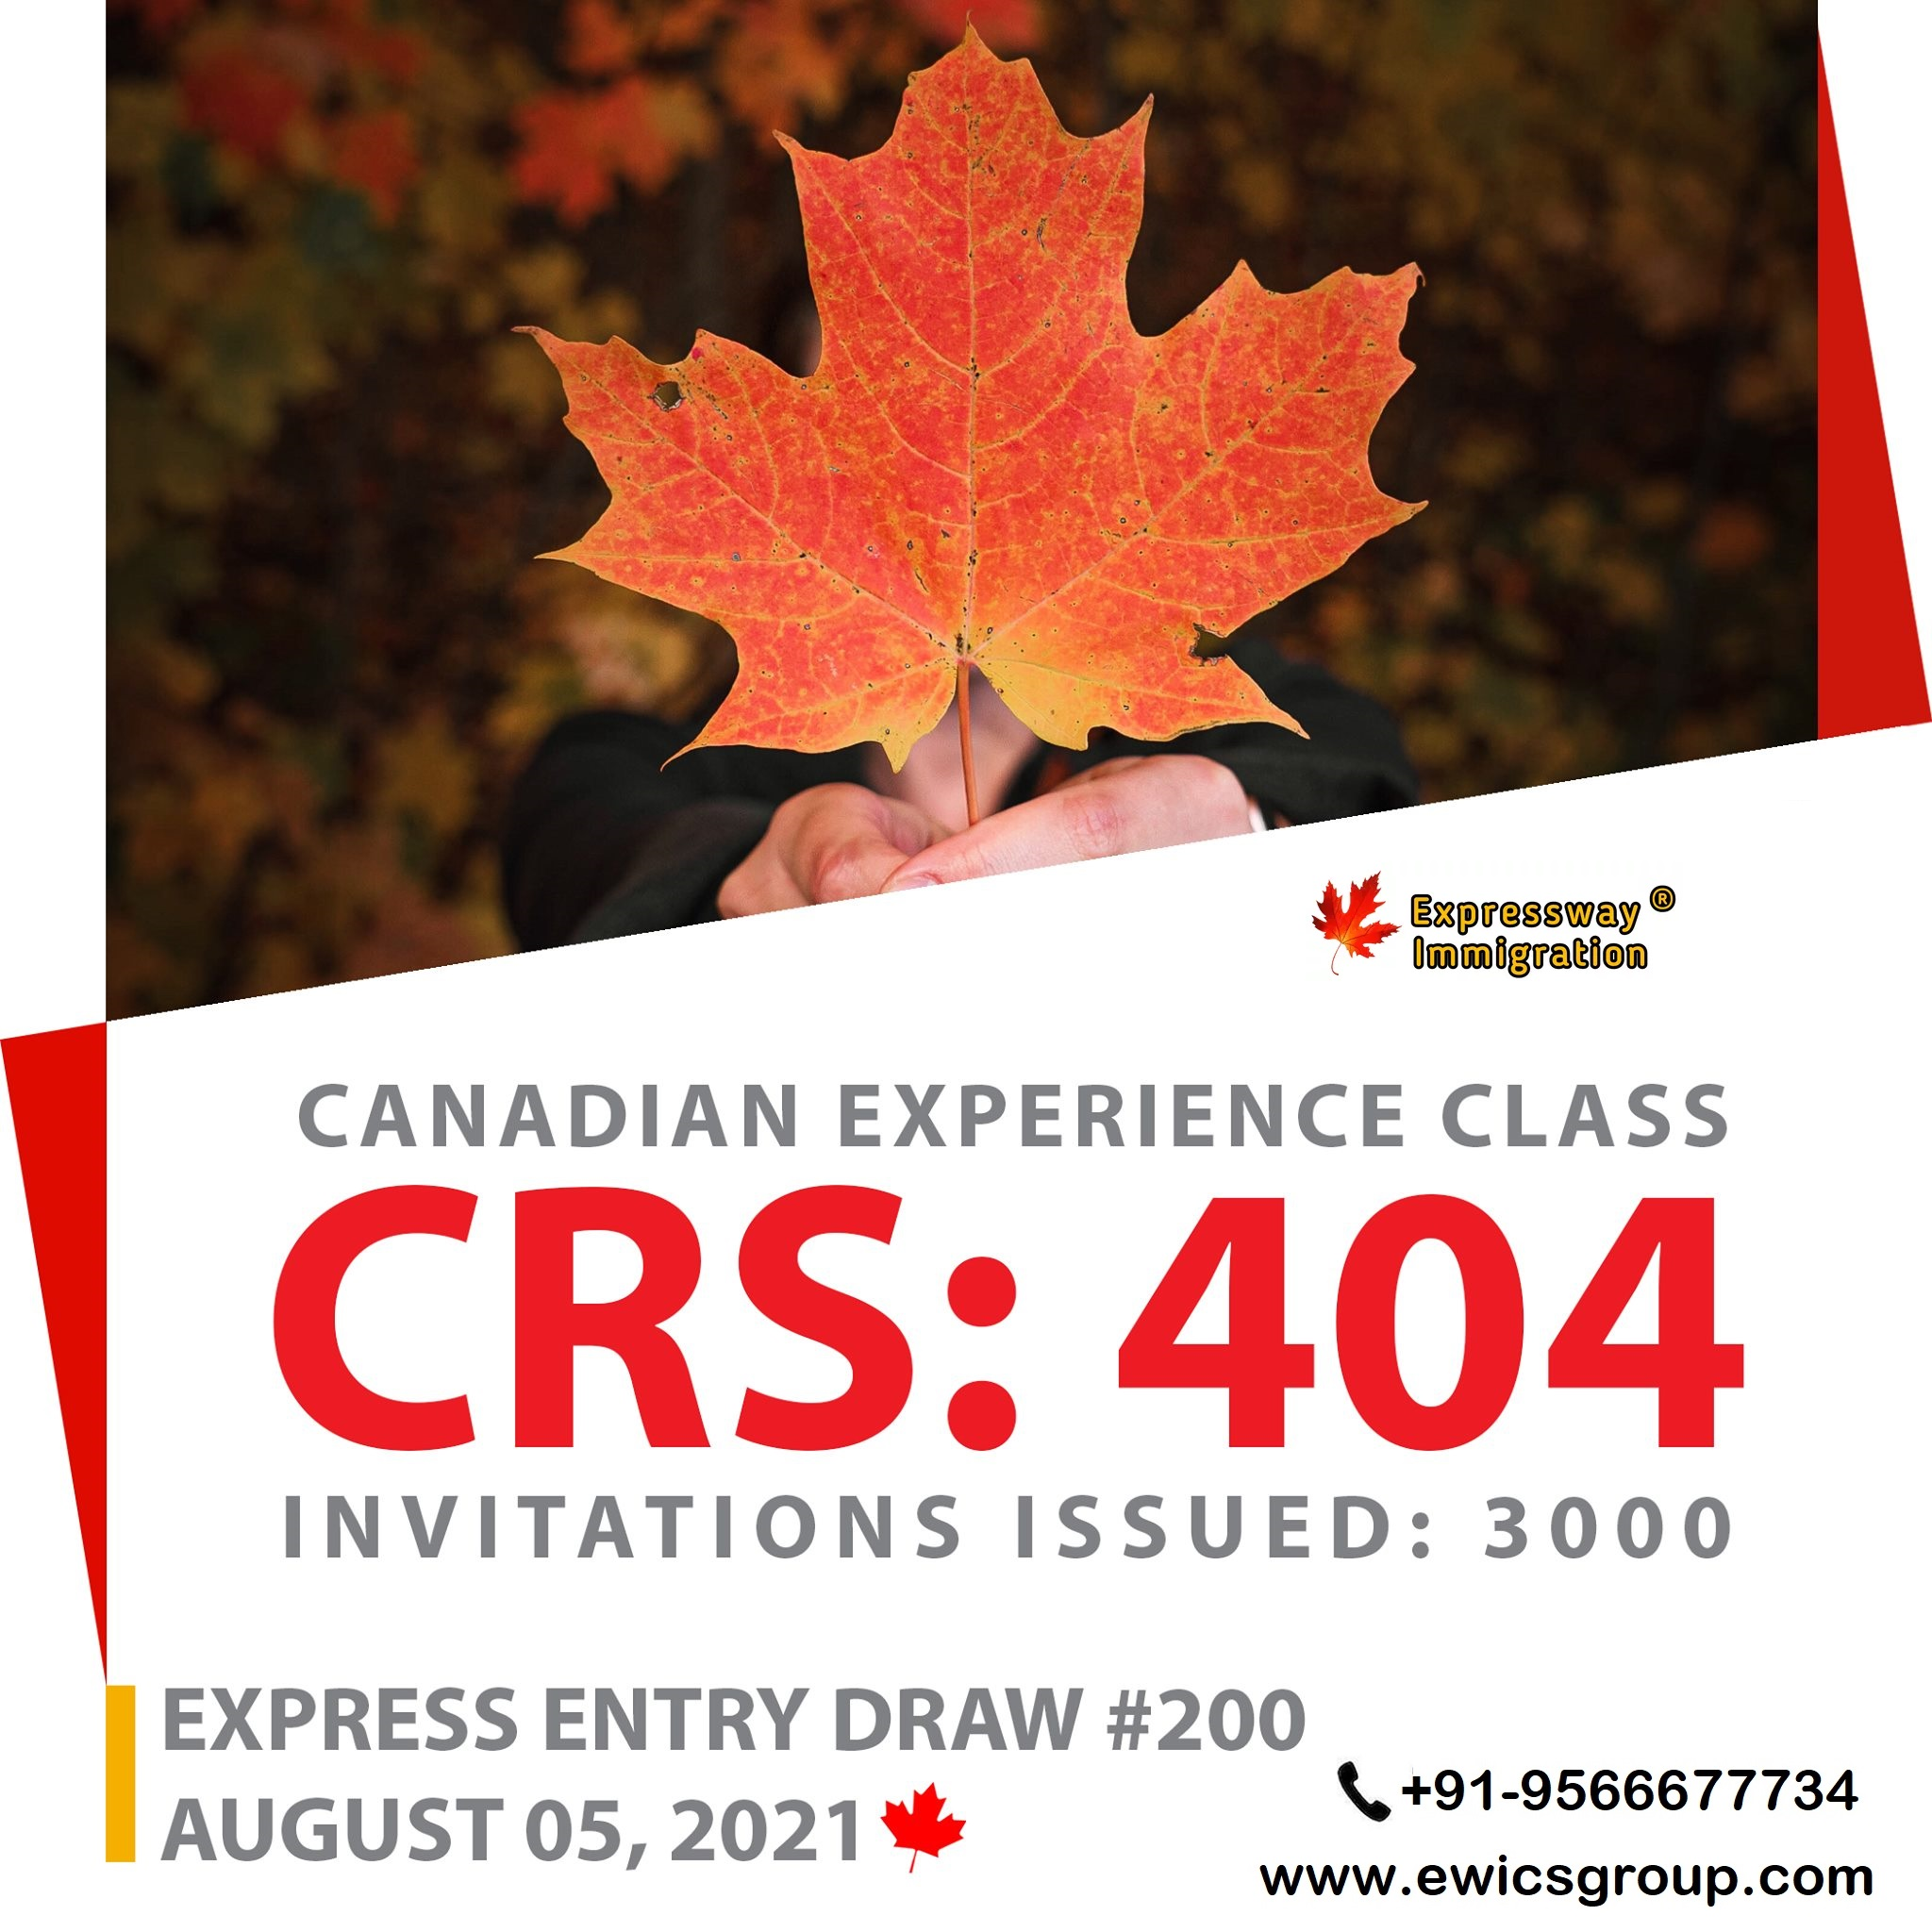 Latest Canada Express Entry Draw #200